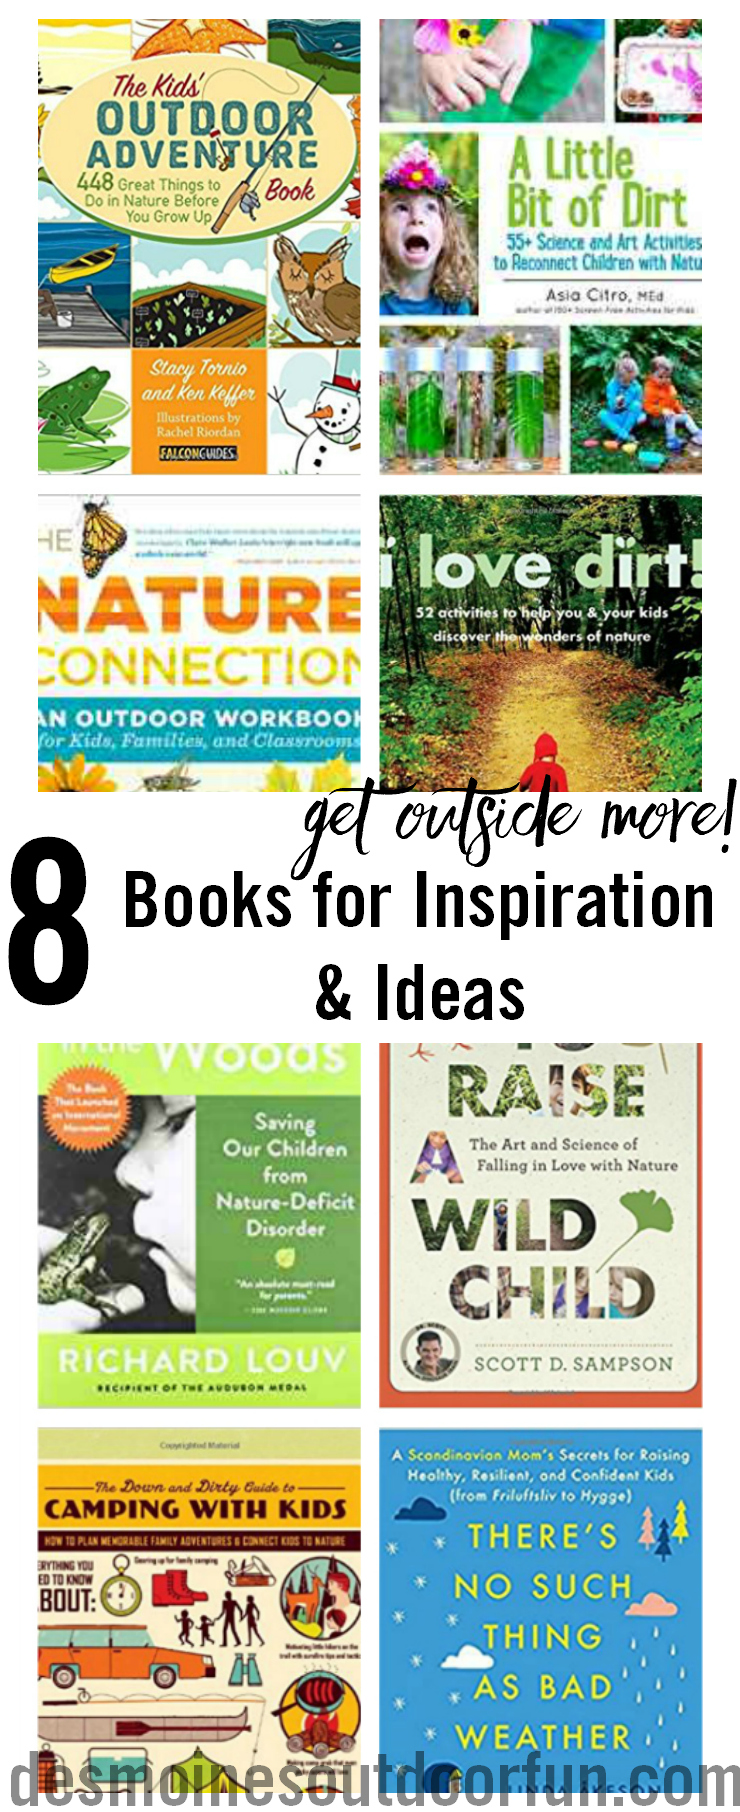 Check out this list of books for parents and teachers who want to get their kids outdoors more! A section of research based books explaining the benfits and a section of books with activities and ideas on what to do with kids outdoors. Lots of inspiration here! #parenting